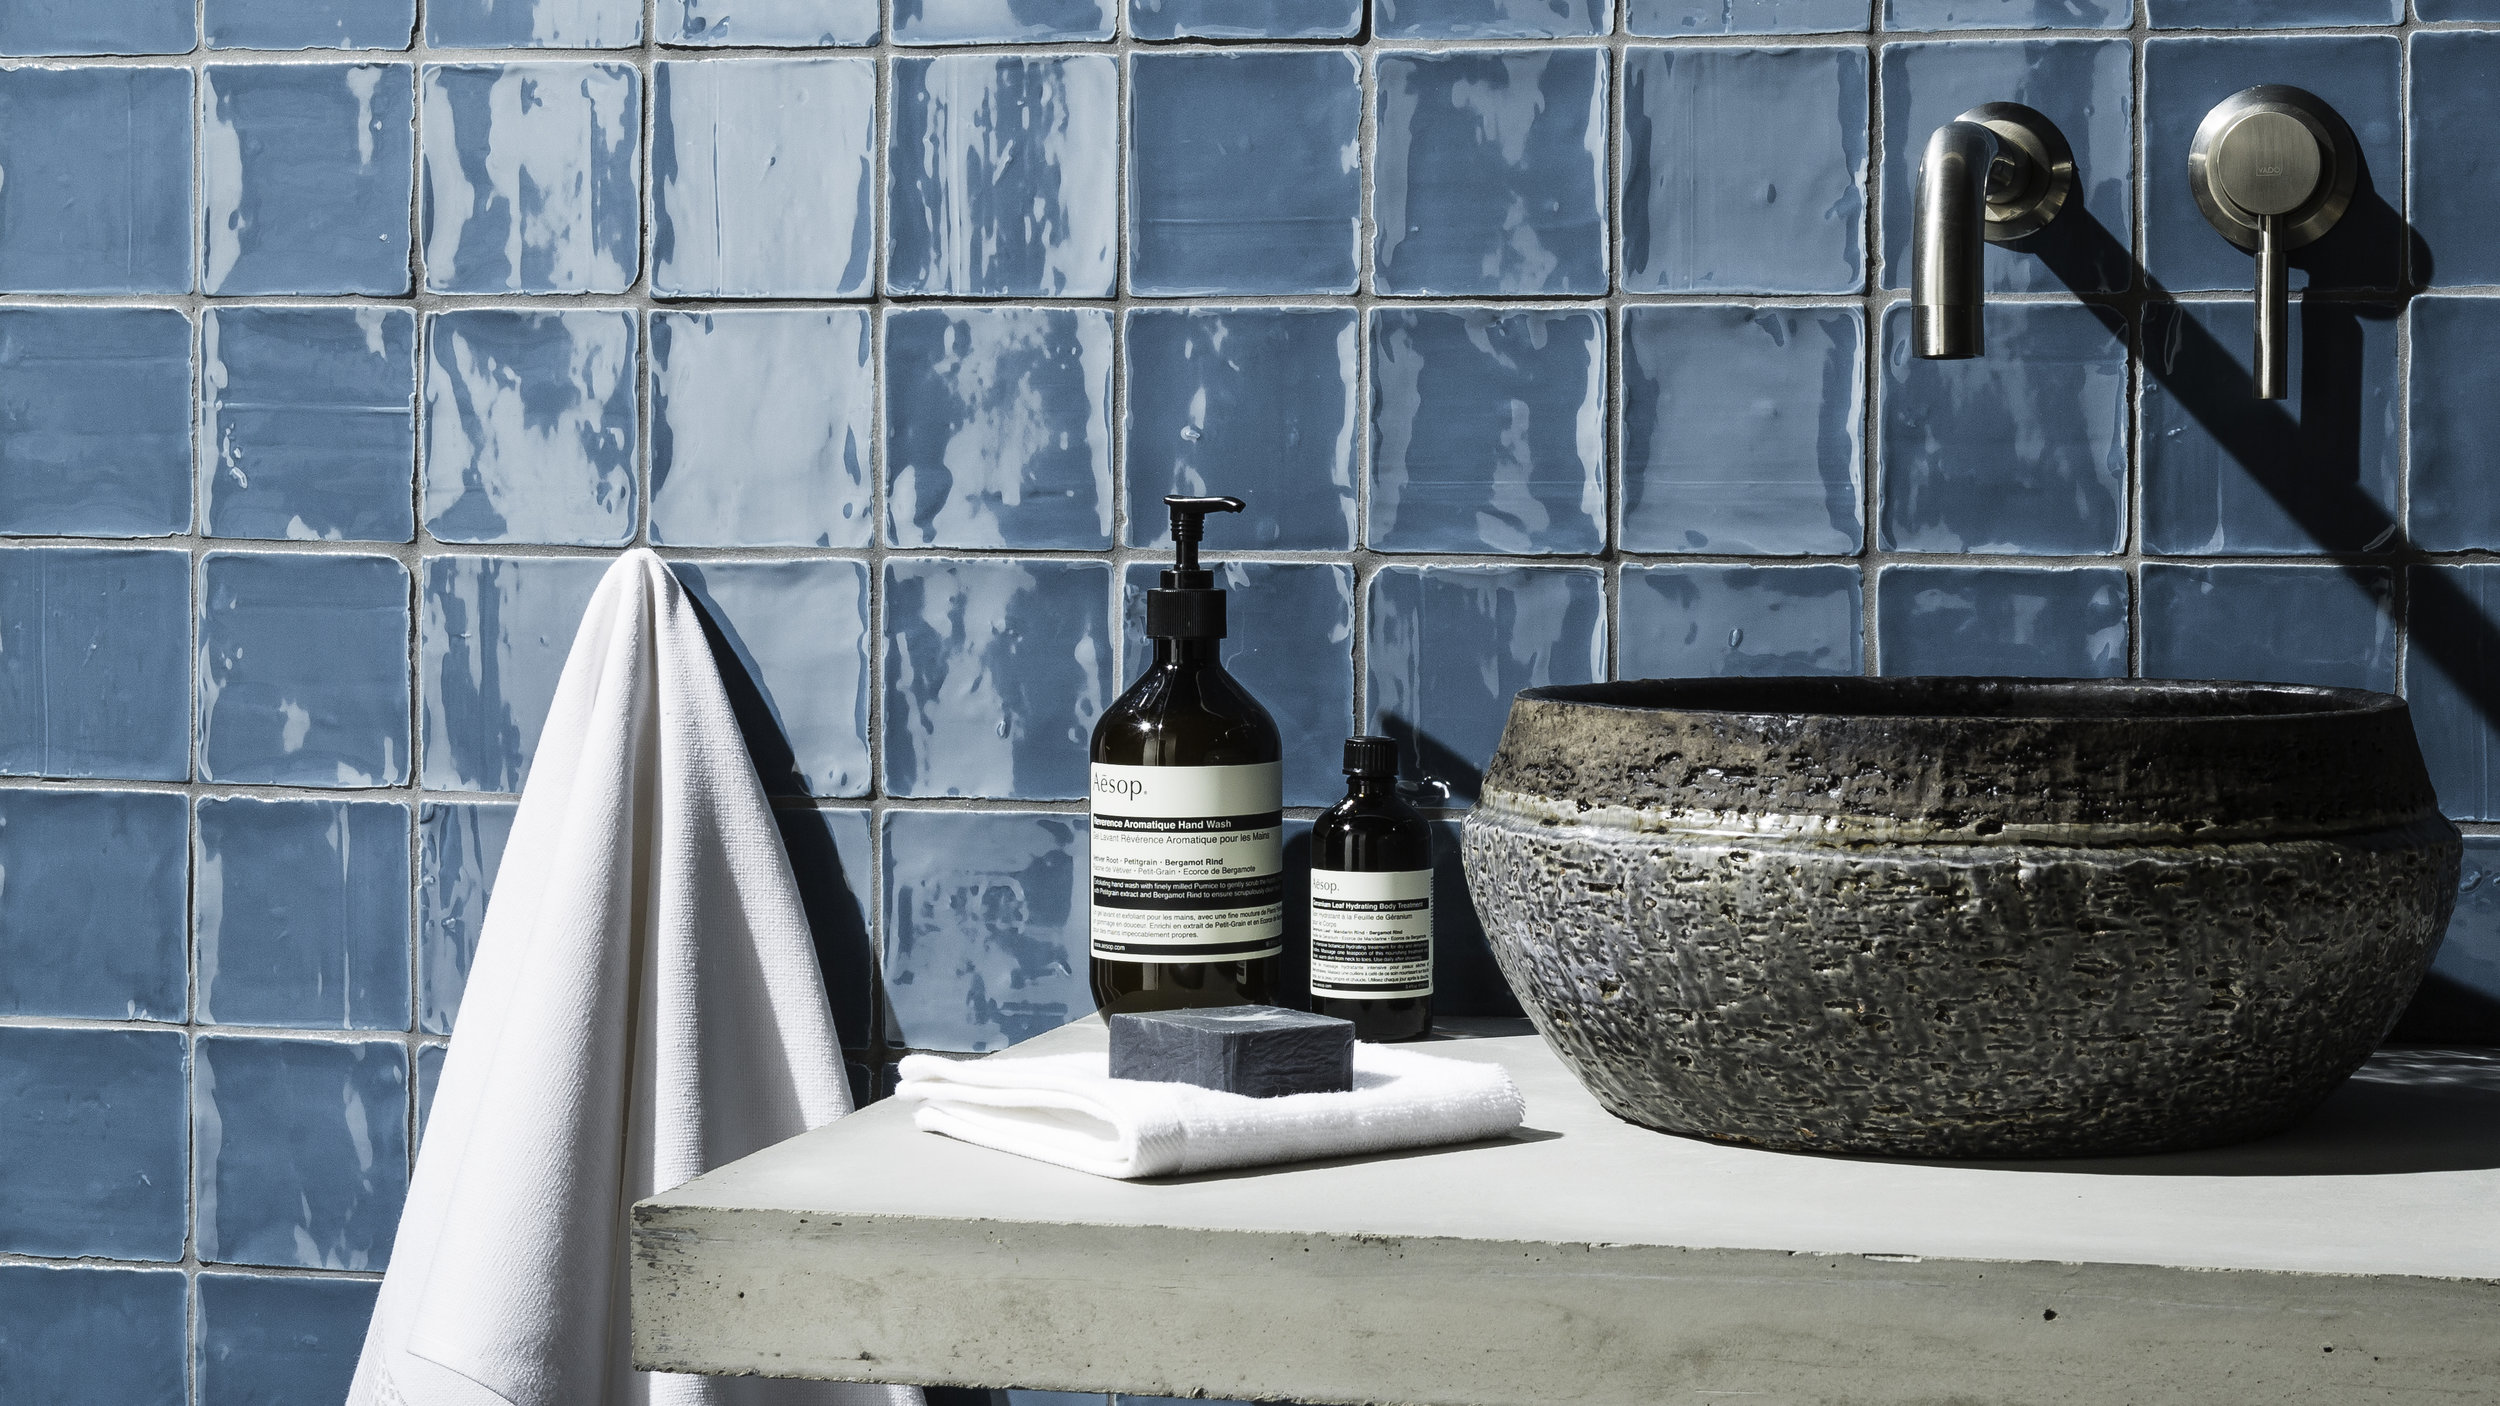 Country Rustic in Ocean Blue from Johnson Tiles' Minton Hollins Collection